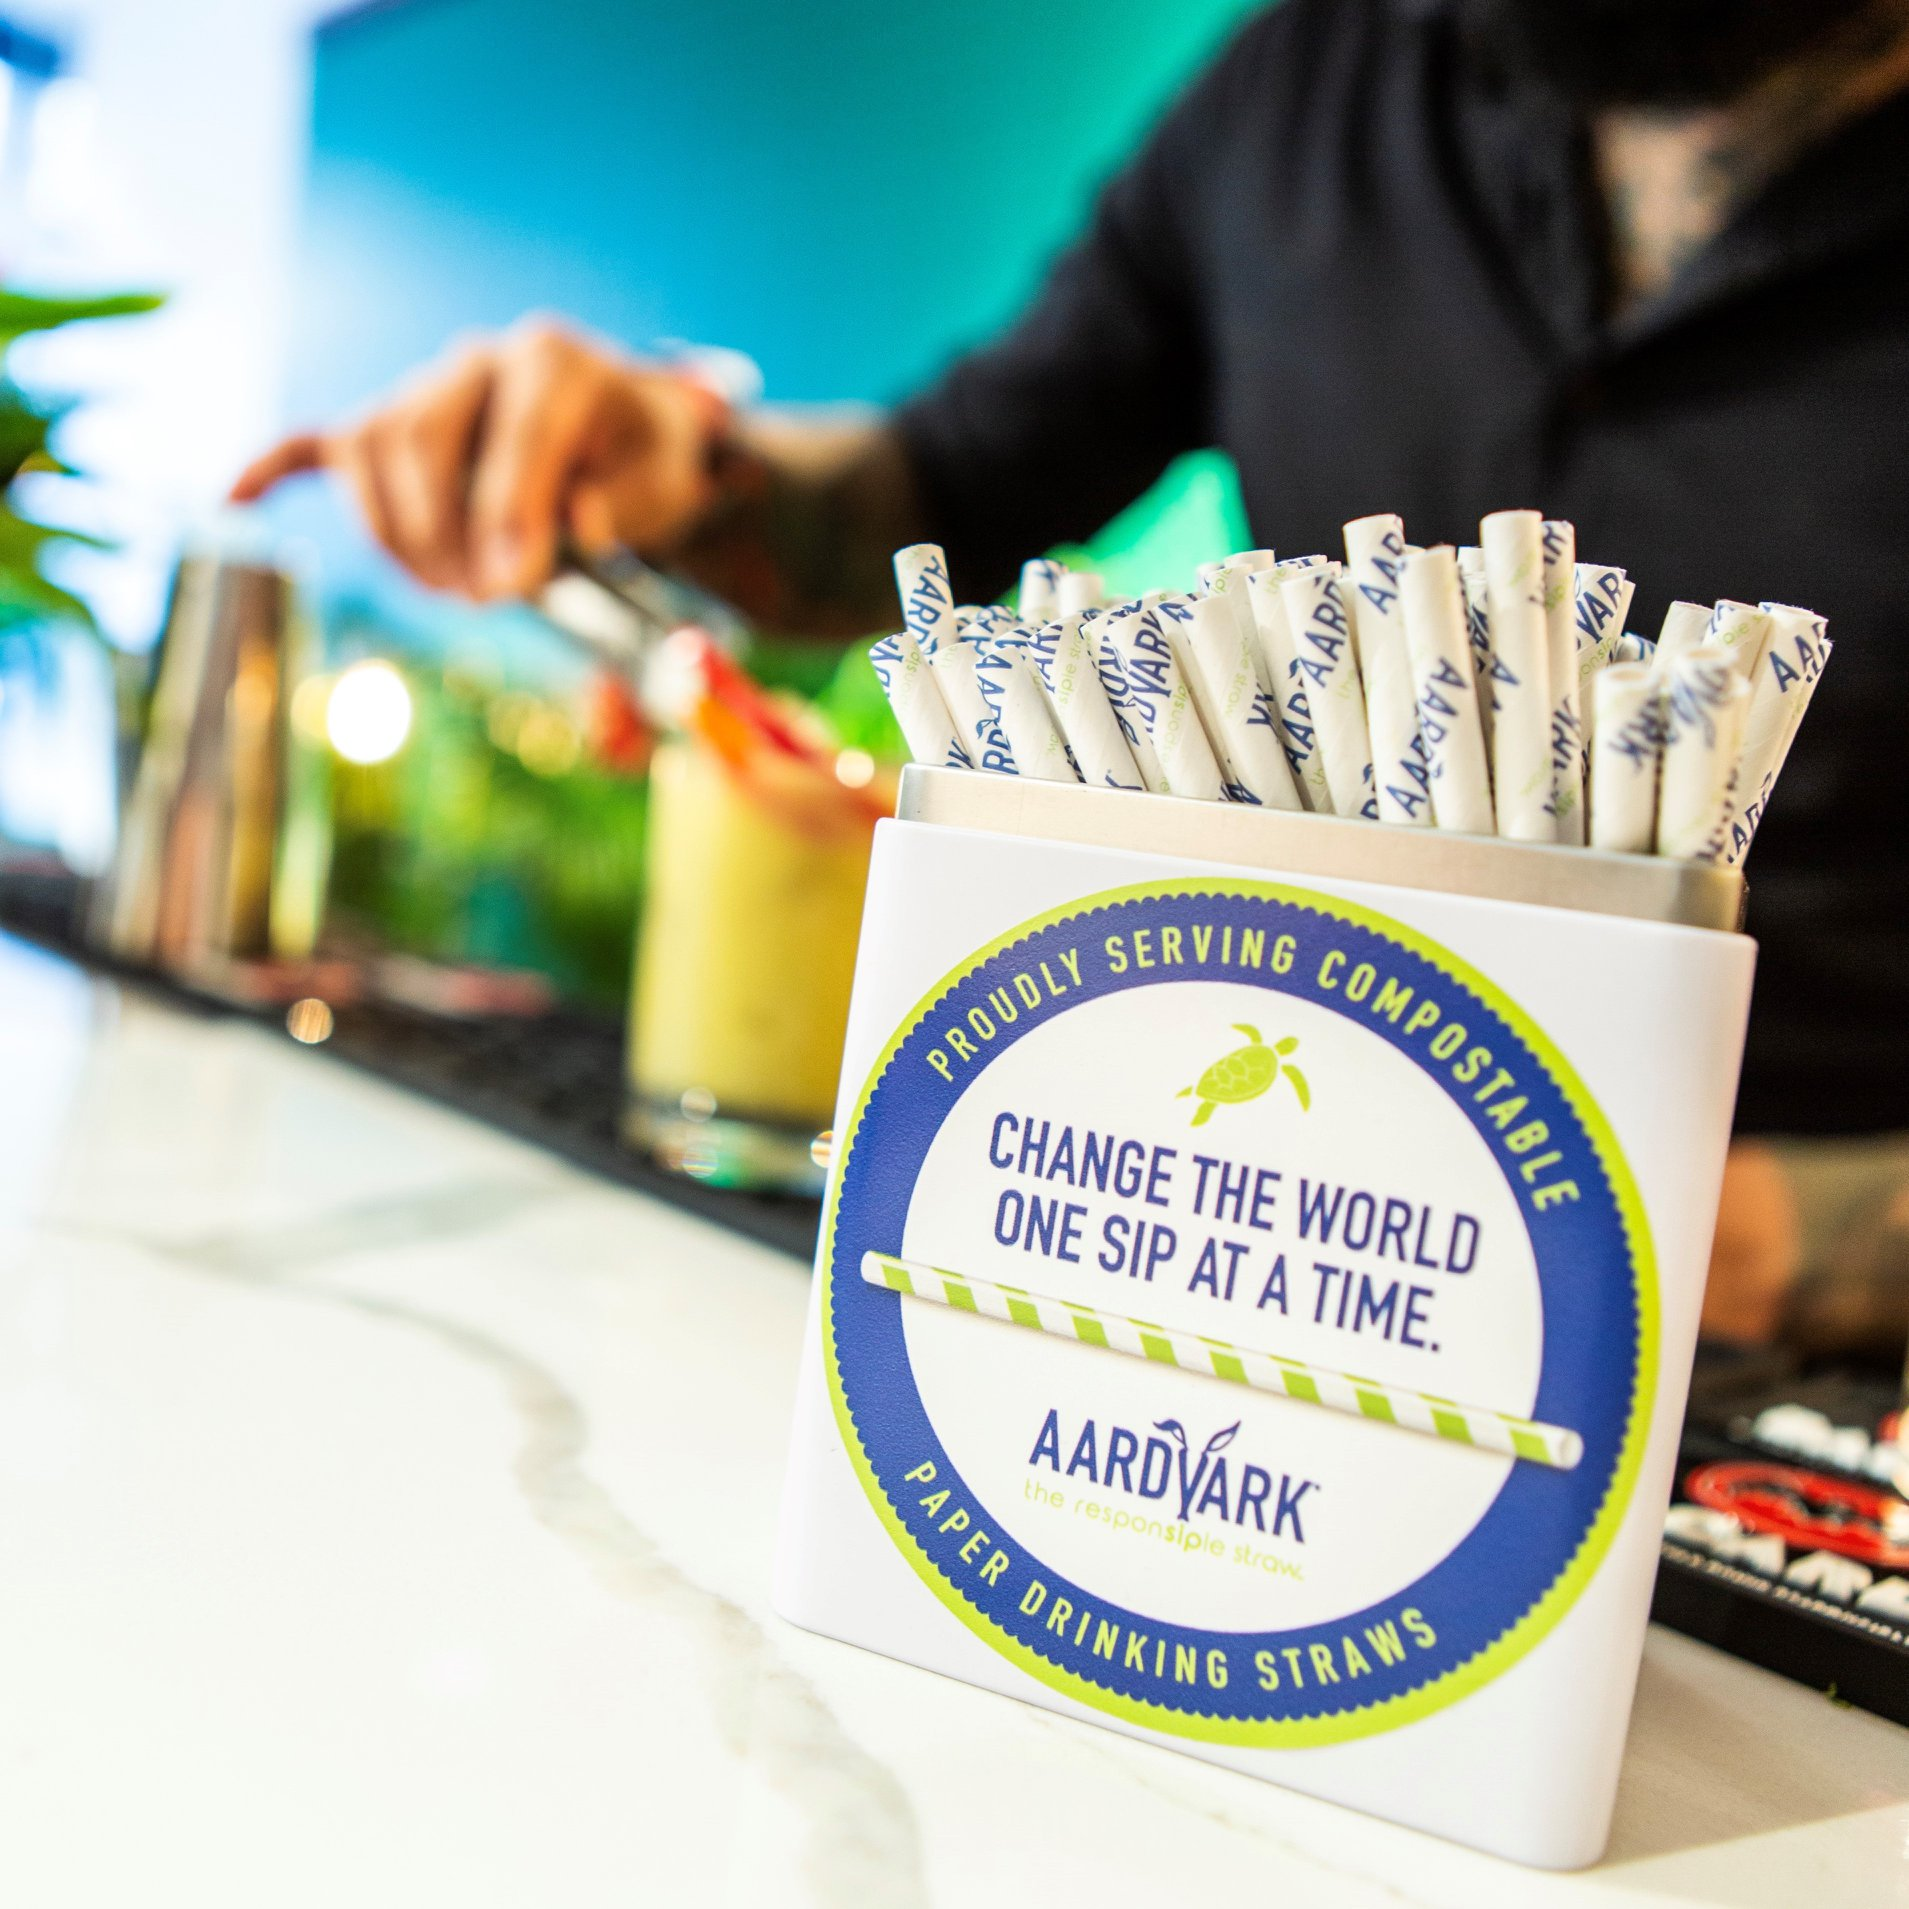 "CHANGE THE WORLDONE SIP AT A TIME - We brought Aardvark's products to the forefront of the ecological movement that is sweeping the world..THE CONCEPTWith the banning of plastic straws around the world, Aardvark was poised to take over the market with their advanced, custom paper straw technology. I developed their branding, experience design and brought their message to the public. We hosted a series of ""Death of the Plastic Straw"" funerals at events such as Tales of The Cocktail in New Orleans. Here, we hired a 2nd Line jazz band to proudly celebrate the death of the plastic straw complete with sea turtle costumes and a glass casket where consumers could toss their old plastic straws in exchange for new Aardvark ones.THE RESULTSAardvark was the talk of Tales of The Cocktail! By taking over the streets of the French Quarter, we drew attention to the great ecological work the brand is doing. Since our program began in early 2019 the company has grown 5x in size. The demand is overwhelming. We also paired them up with restaurants, Bacardi and Angostura and brought them into the limelight as the go-to American straw."